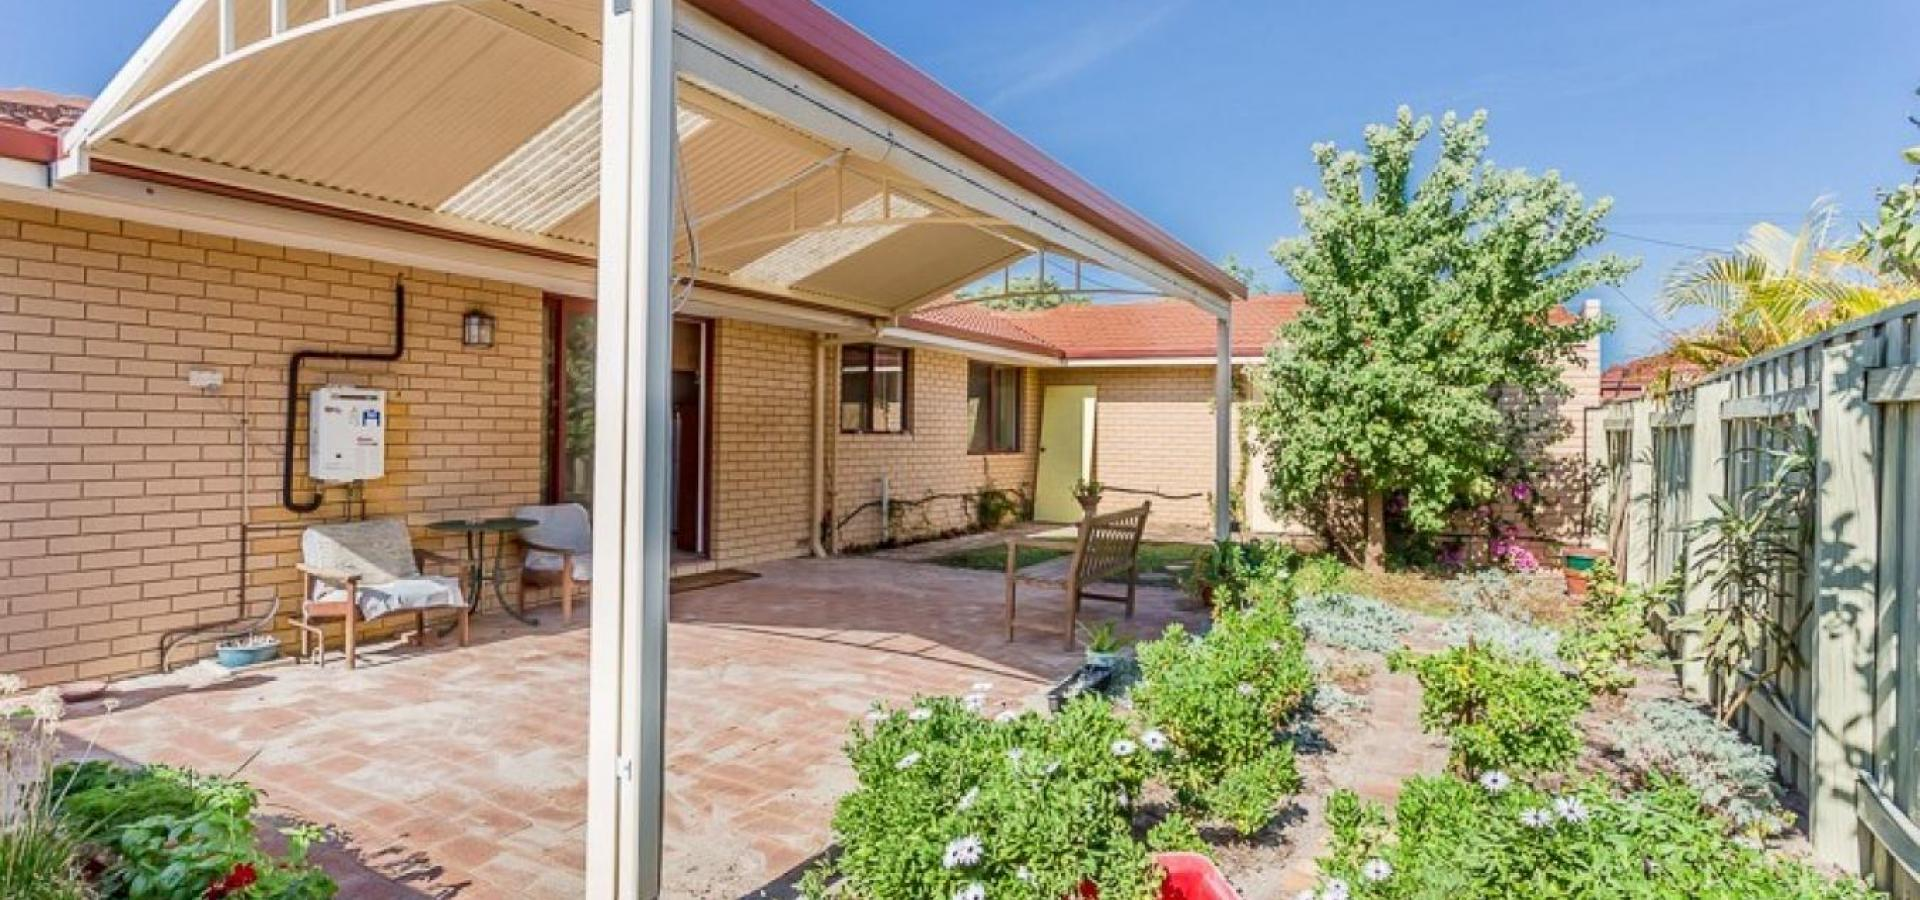 EASY CARE HOME WITH GREAT POTENTIAL!